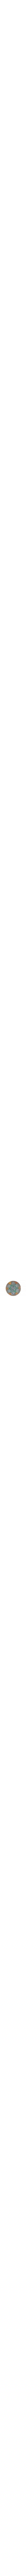 colcourful Passover Seder plate